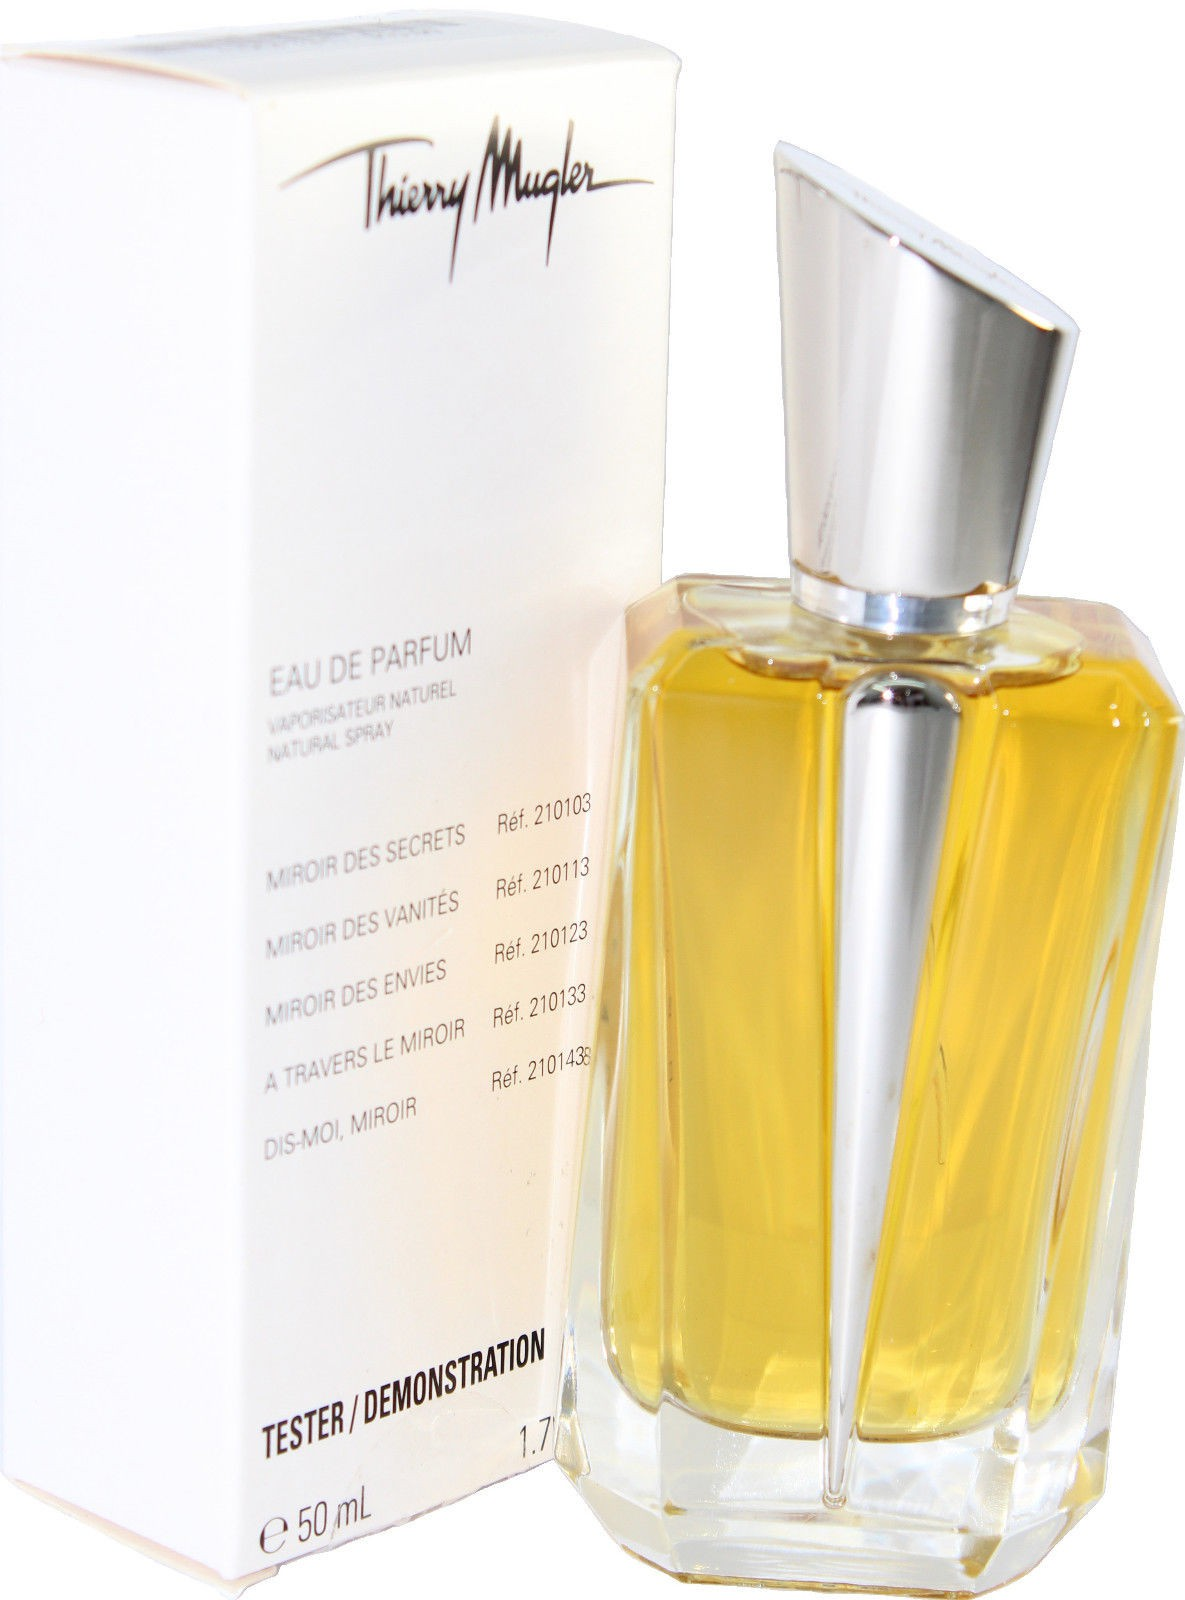 Mugler travers le miroir 2008 for A travers le miroir